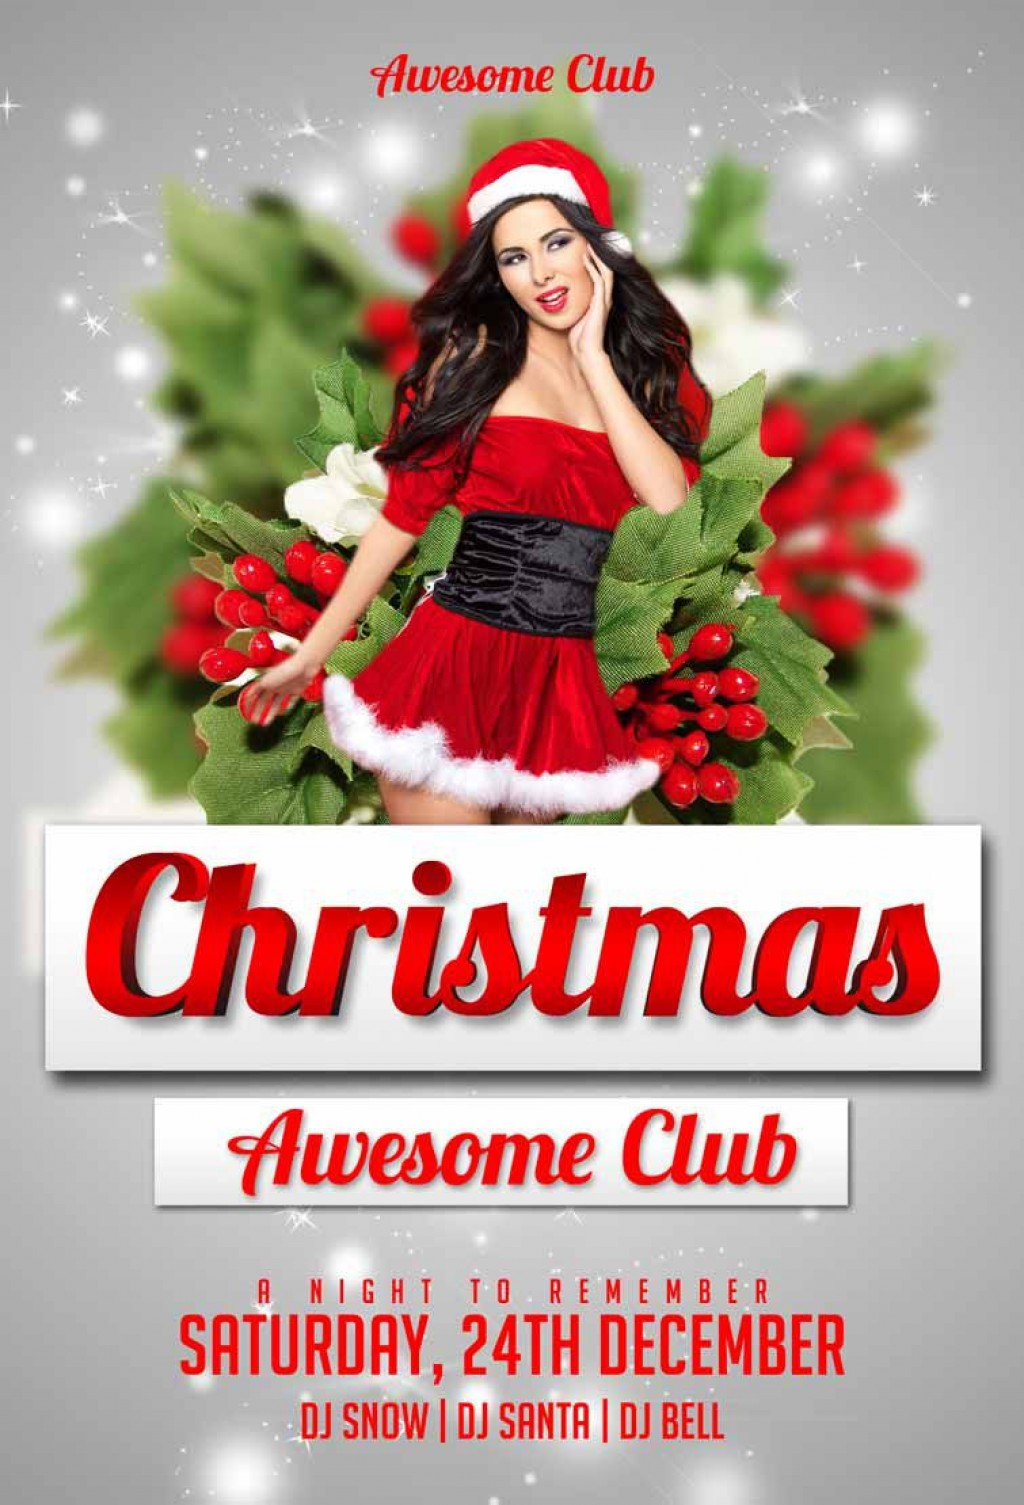 007 Astounding Free Christma Flyer Template High Definition  Templates Holiday Invitation Microsoft Word PsdLarge